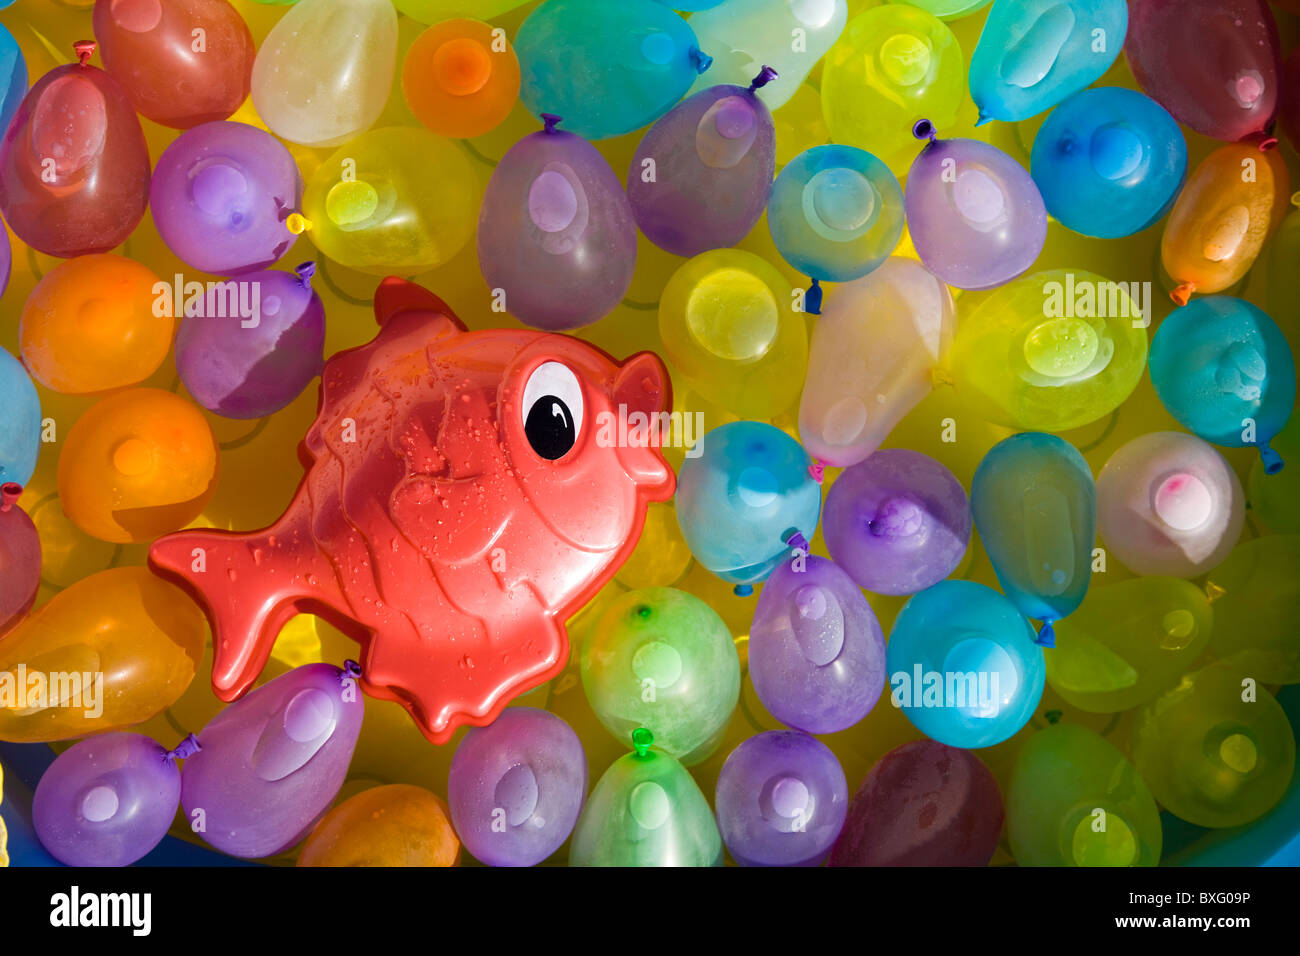 Toy fish between colored balloons - Stock Image